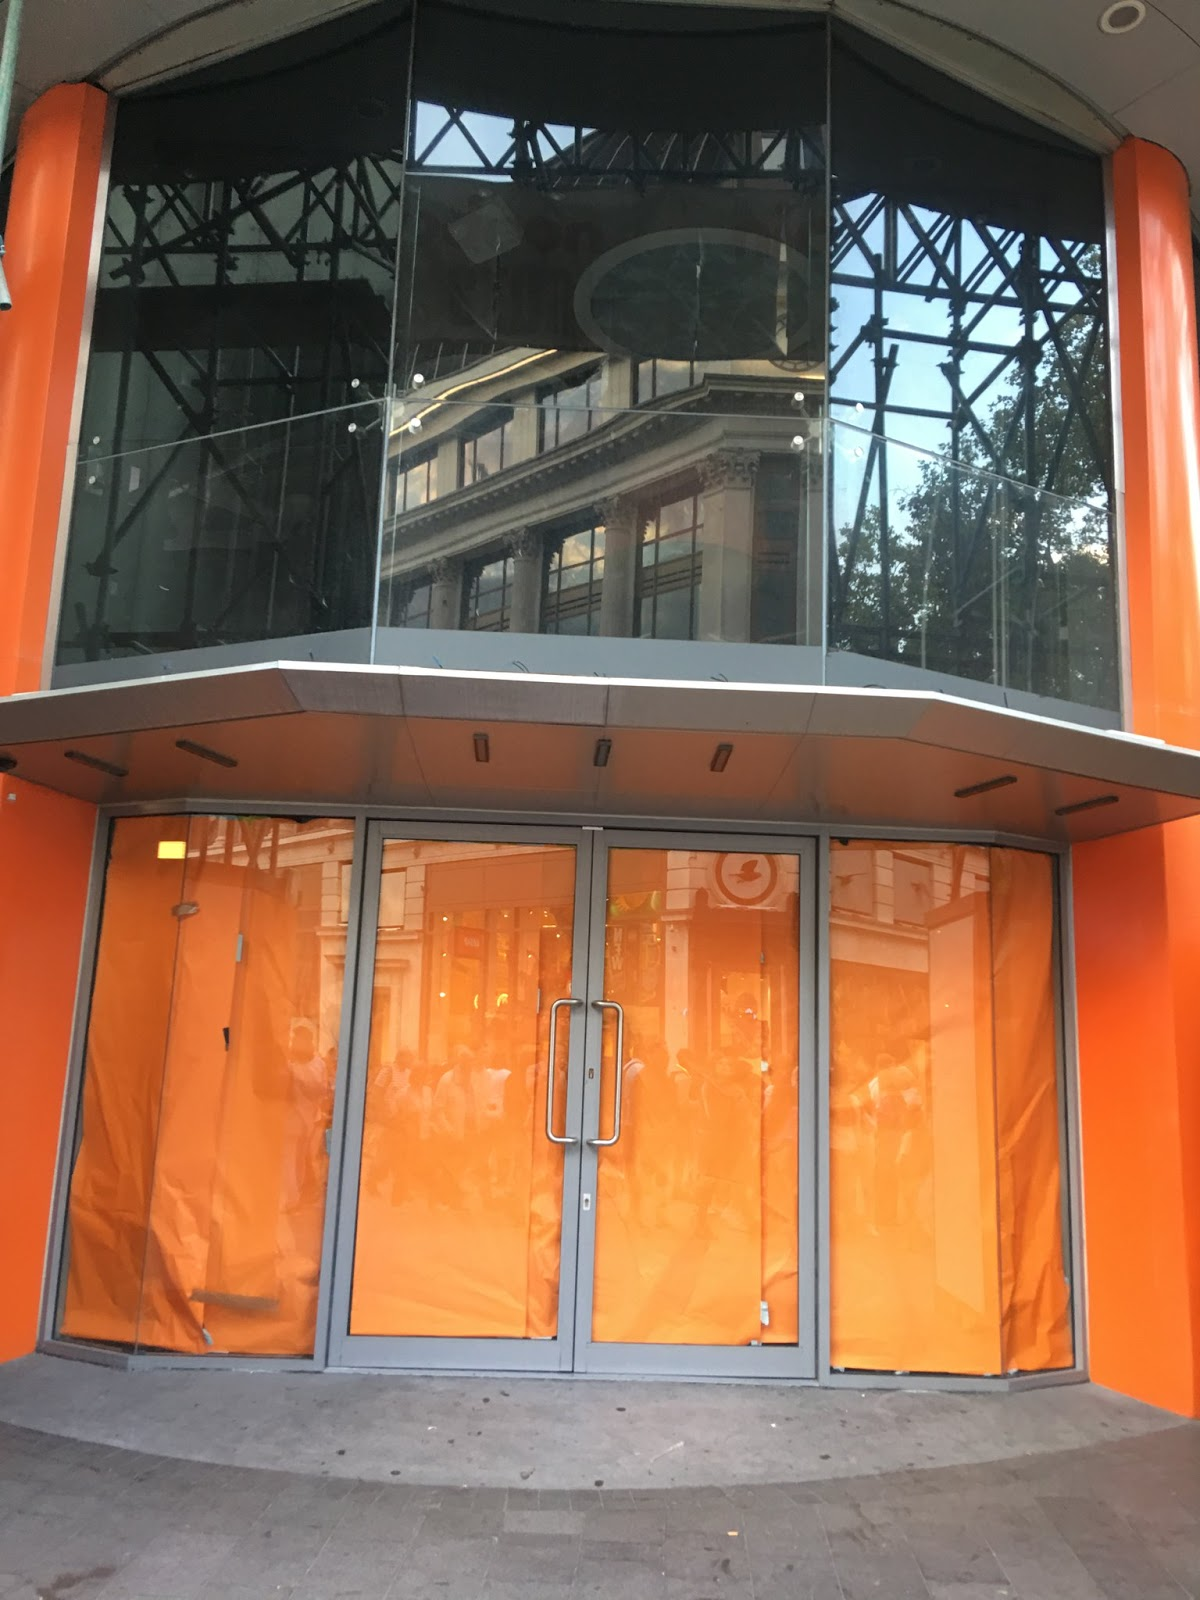 Nickelodeon Leicester Square : nickelodeon, leicester, square, NickALive!:, Nickelodeon, Store, London, Closes